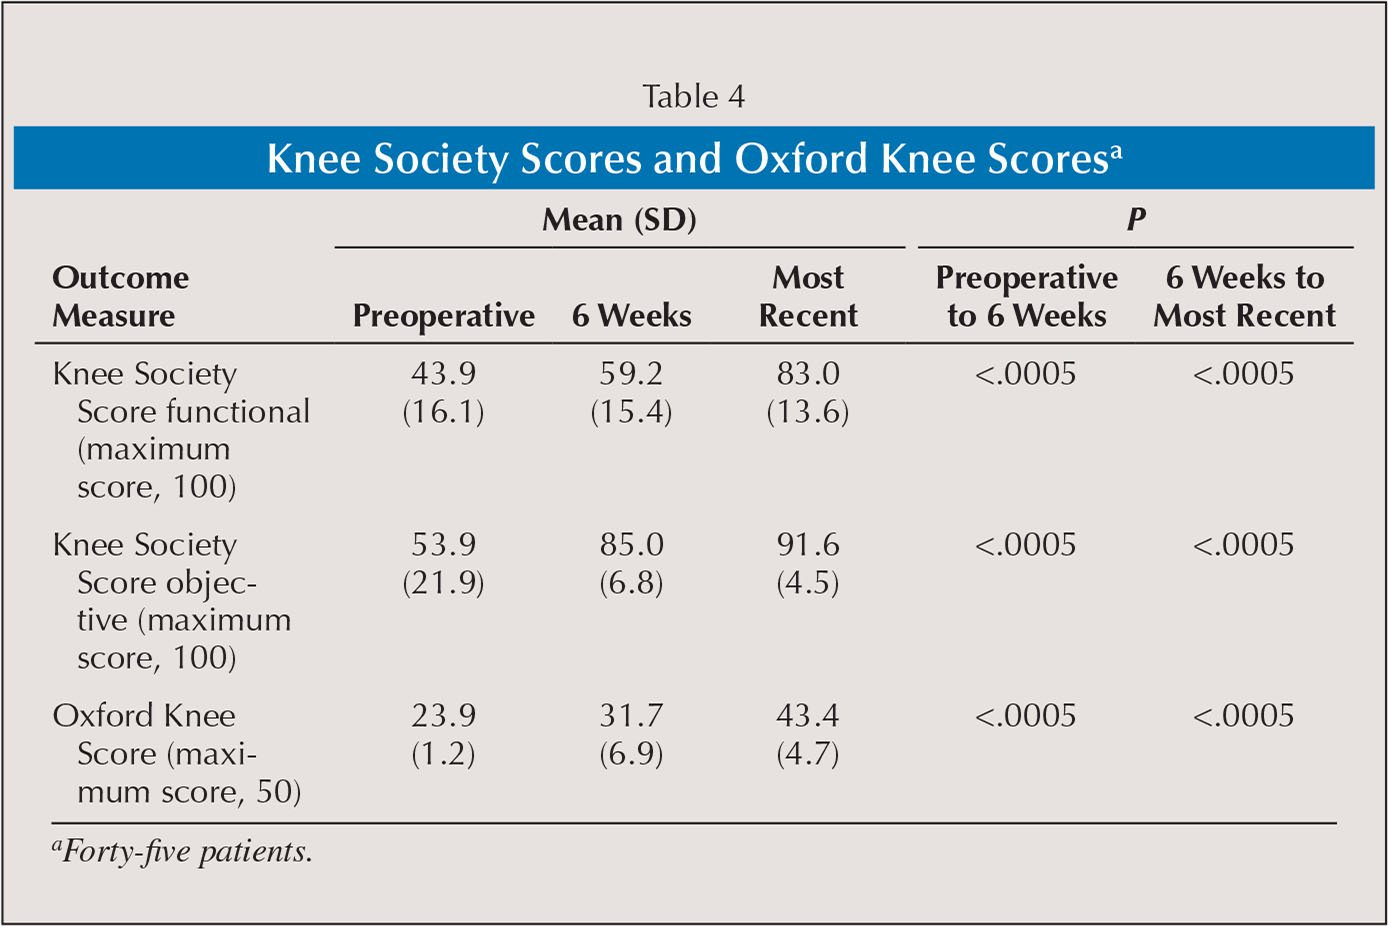 Knee Society Scores and Oxford Knee Scoresa